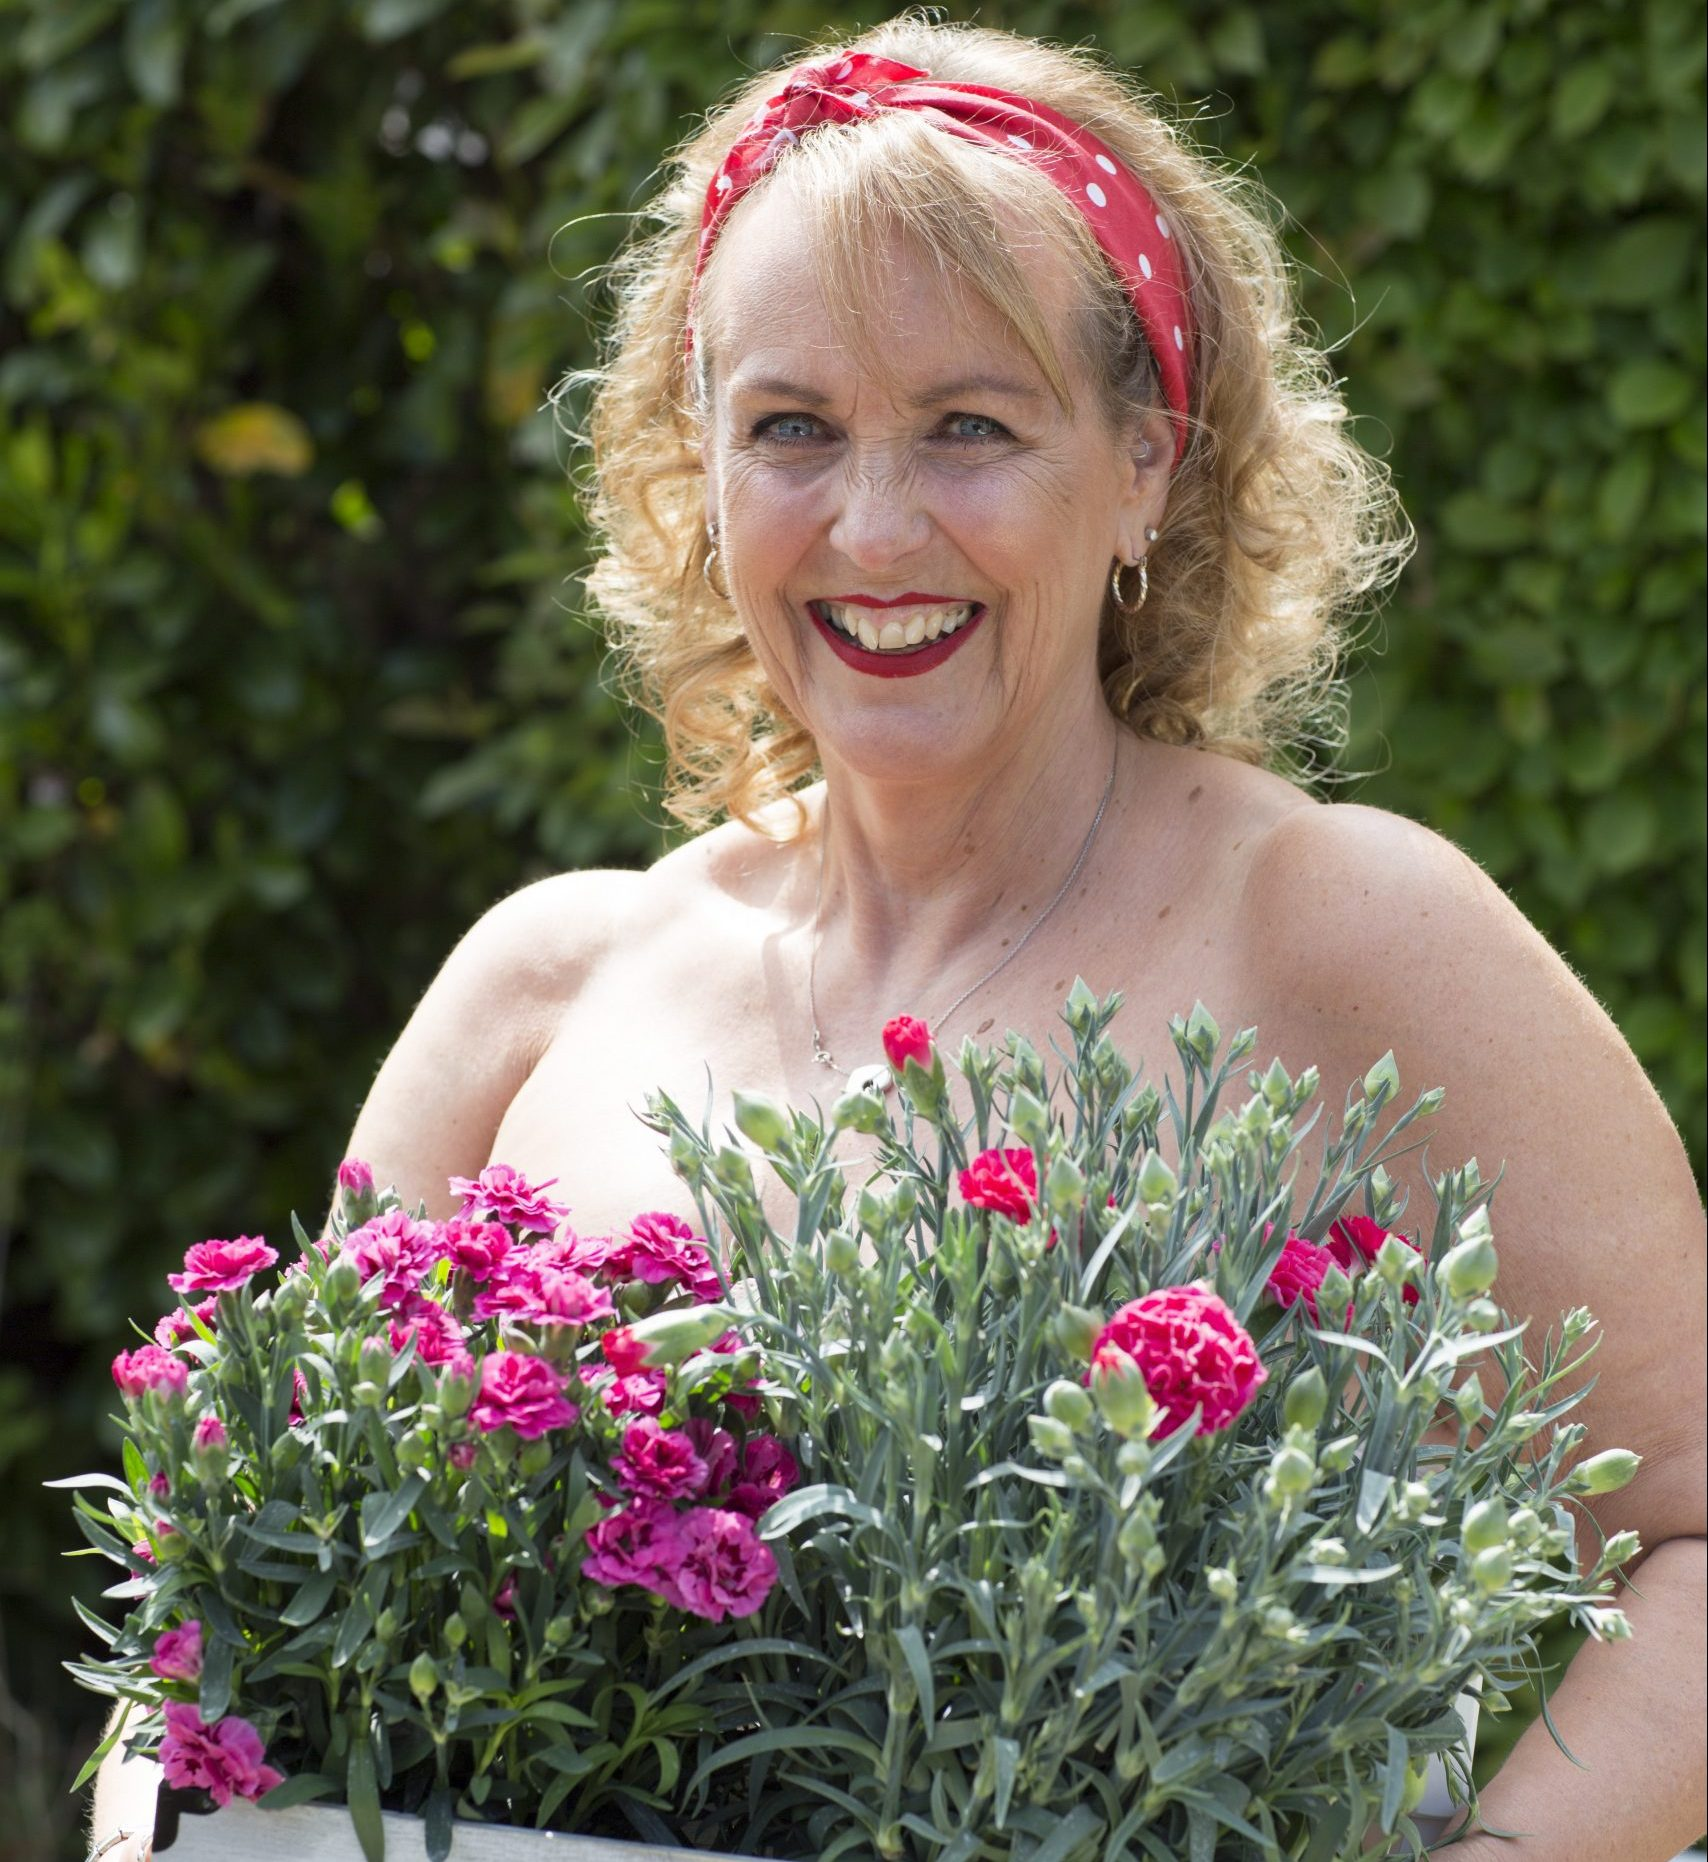 Jo during our calendar shoot, posing with flowers.